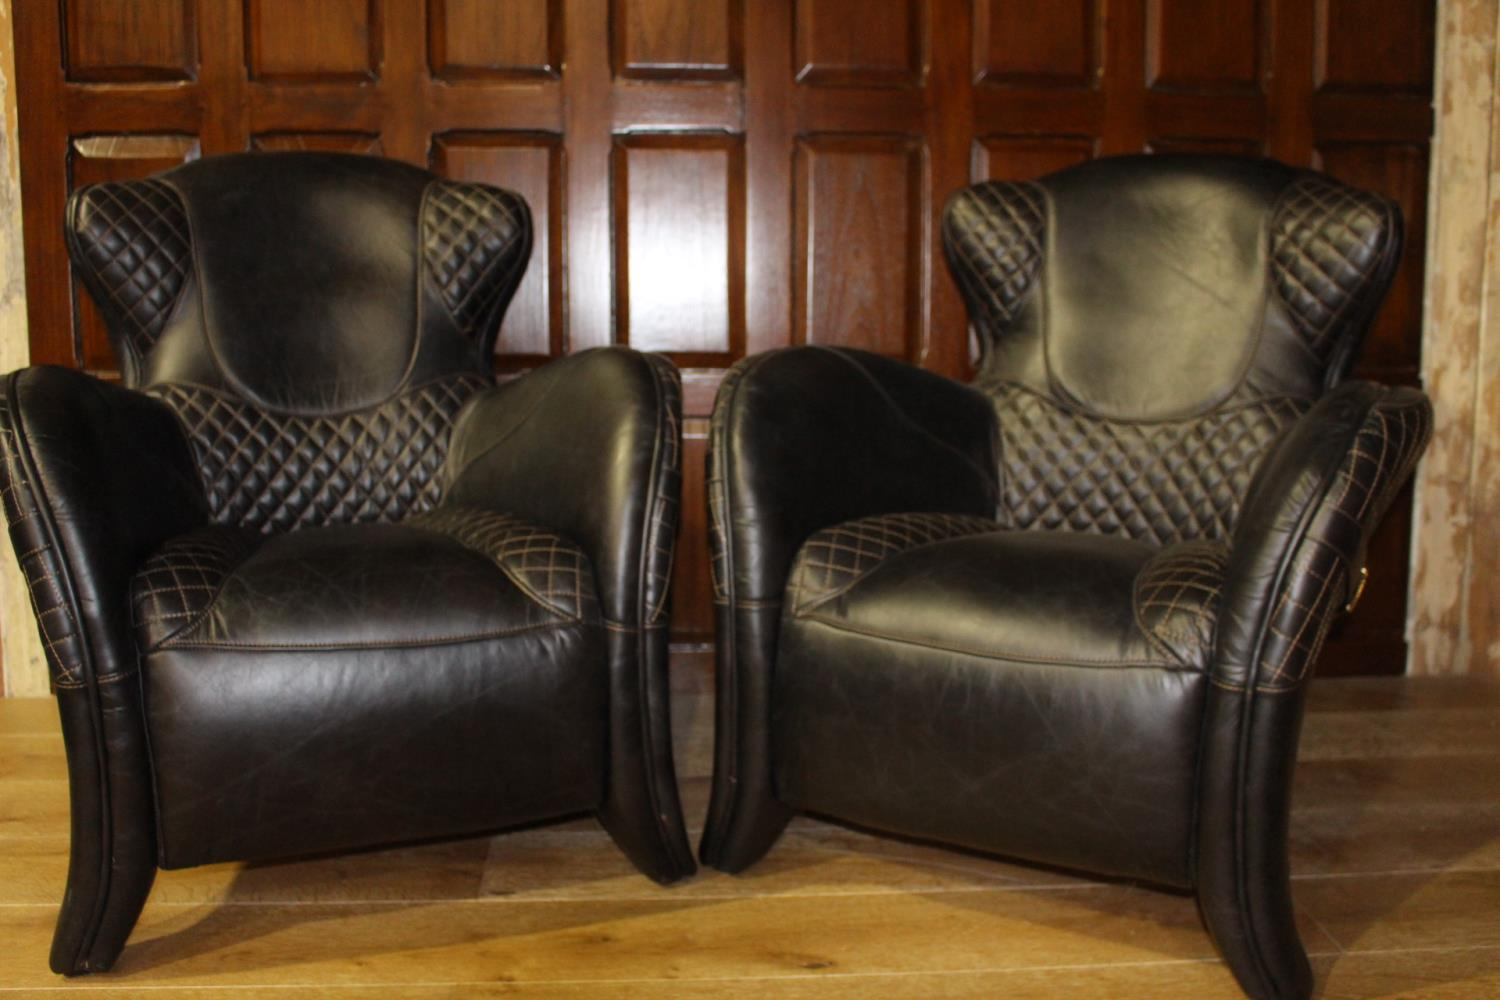 Pair of unusual leather upholstered armchairs